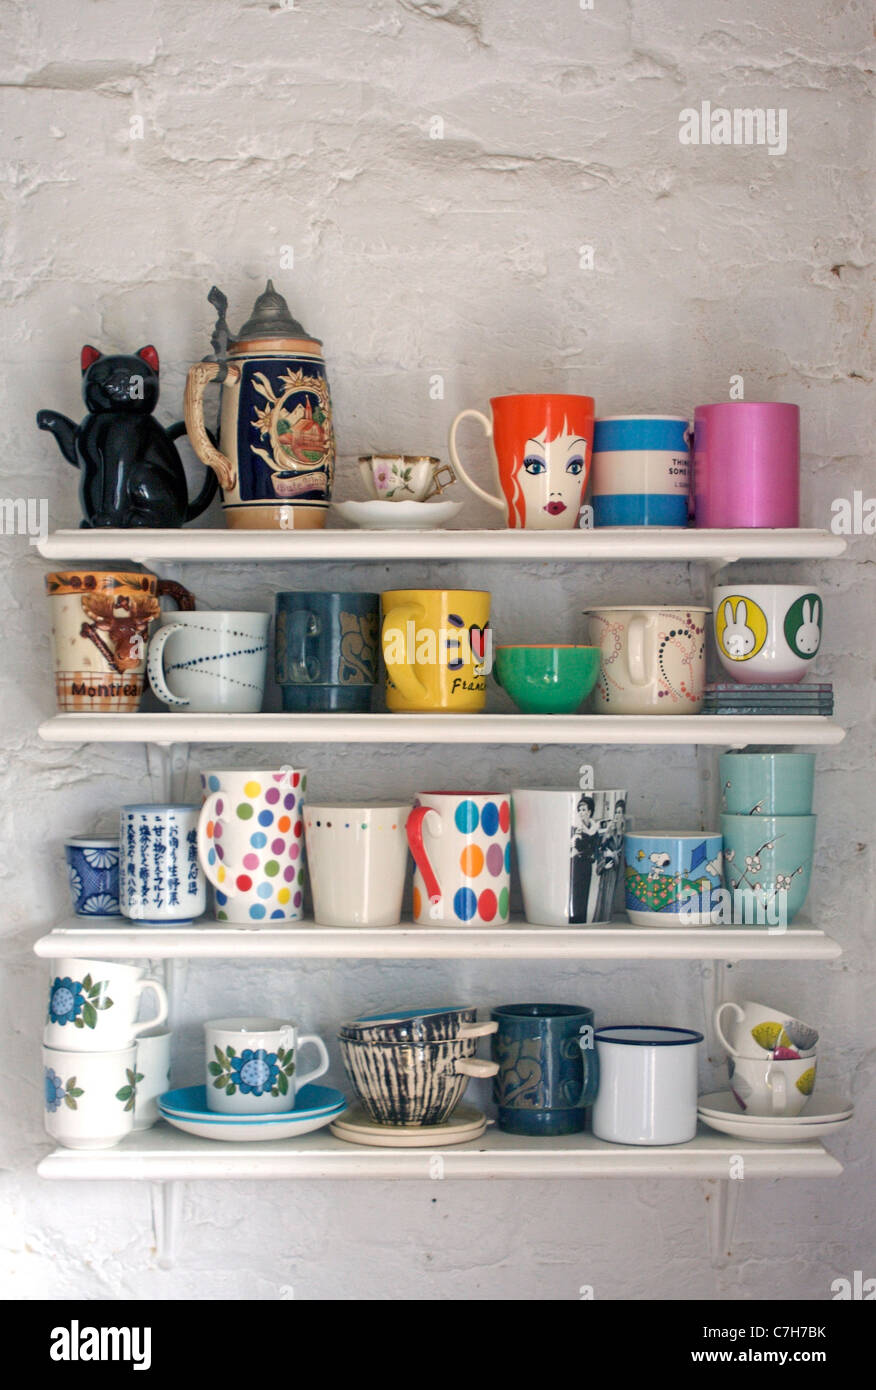 Shelves In The Kitchen Crowded With Mugs Stock Photo Alamy